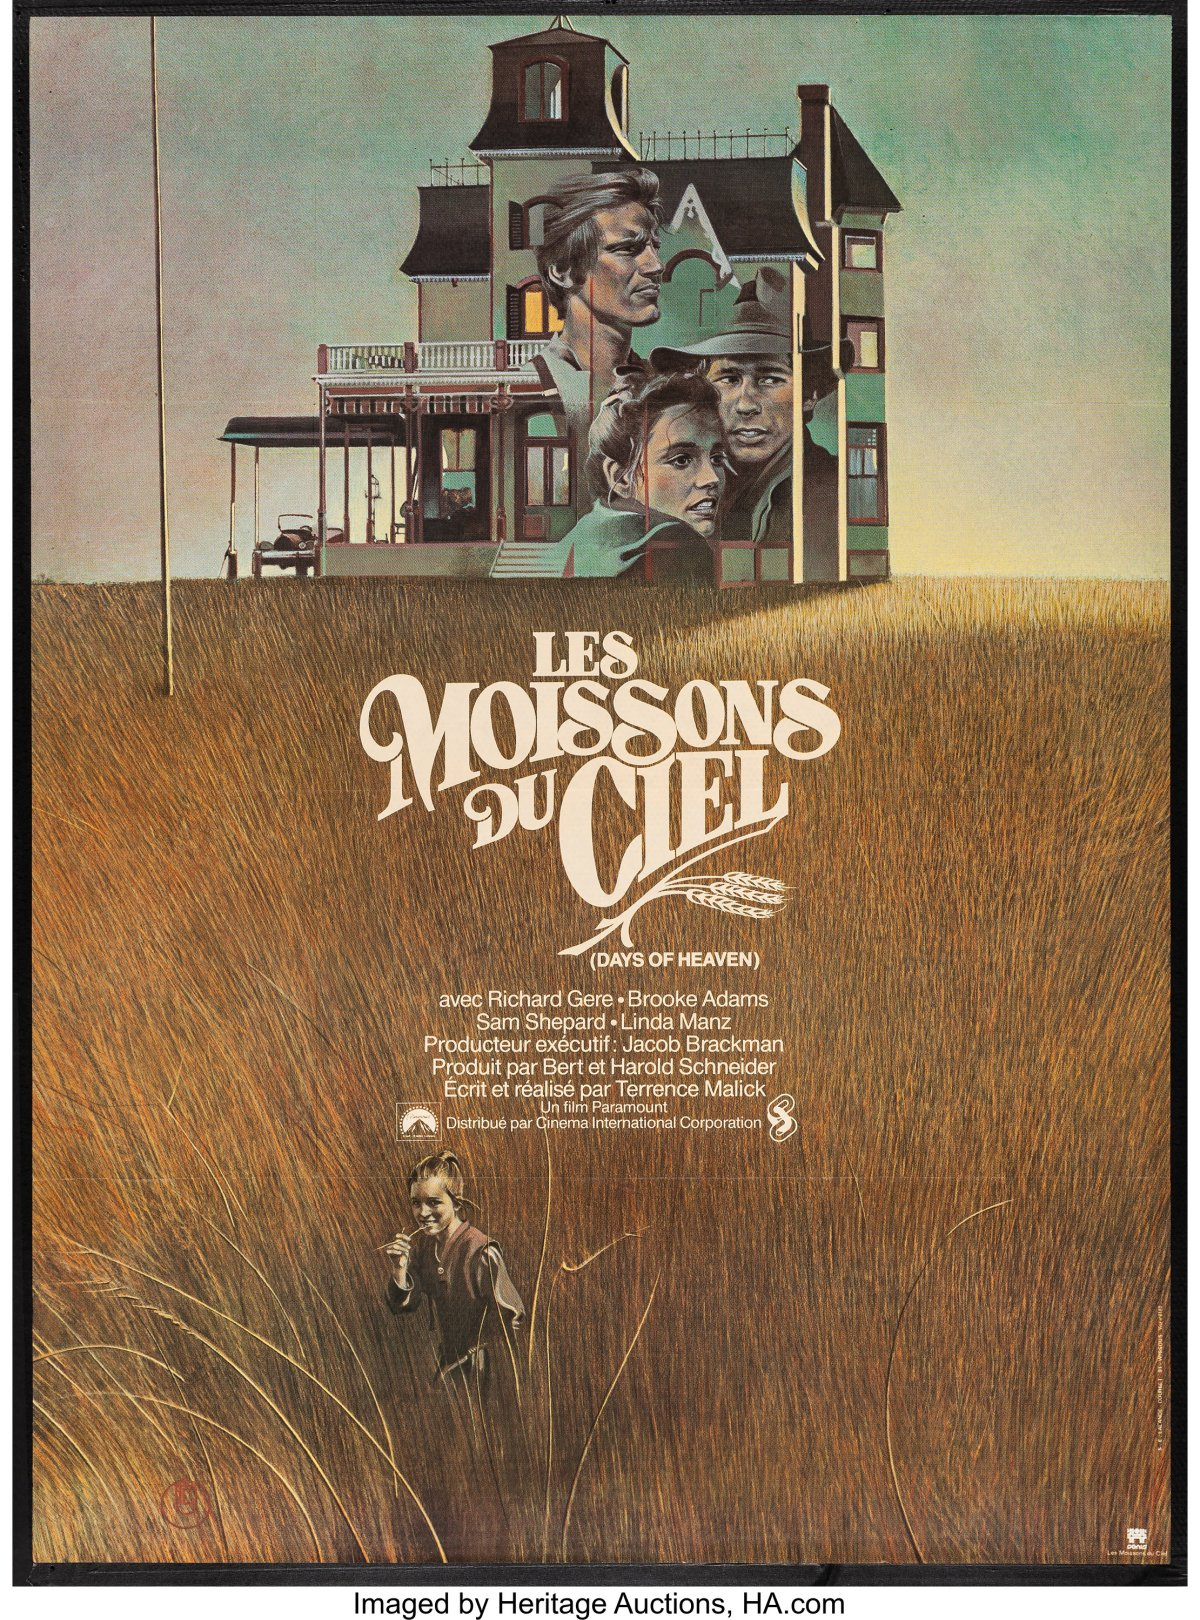 Days of Heaven french poster